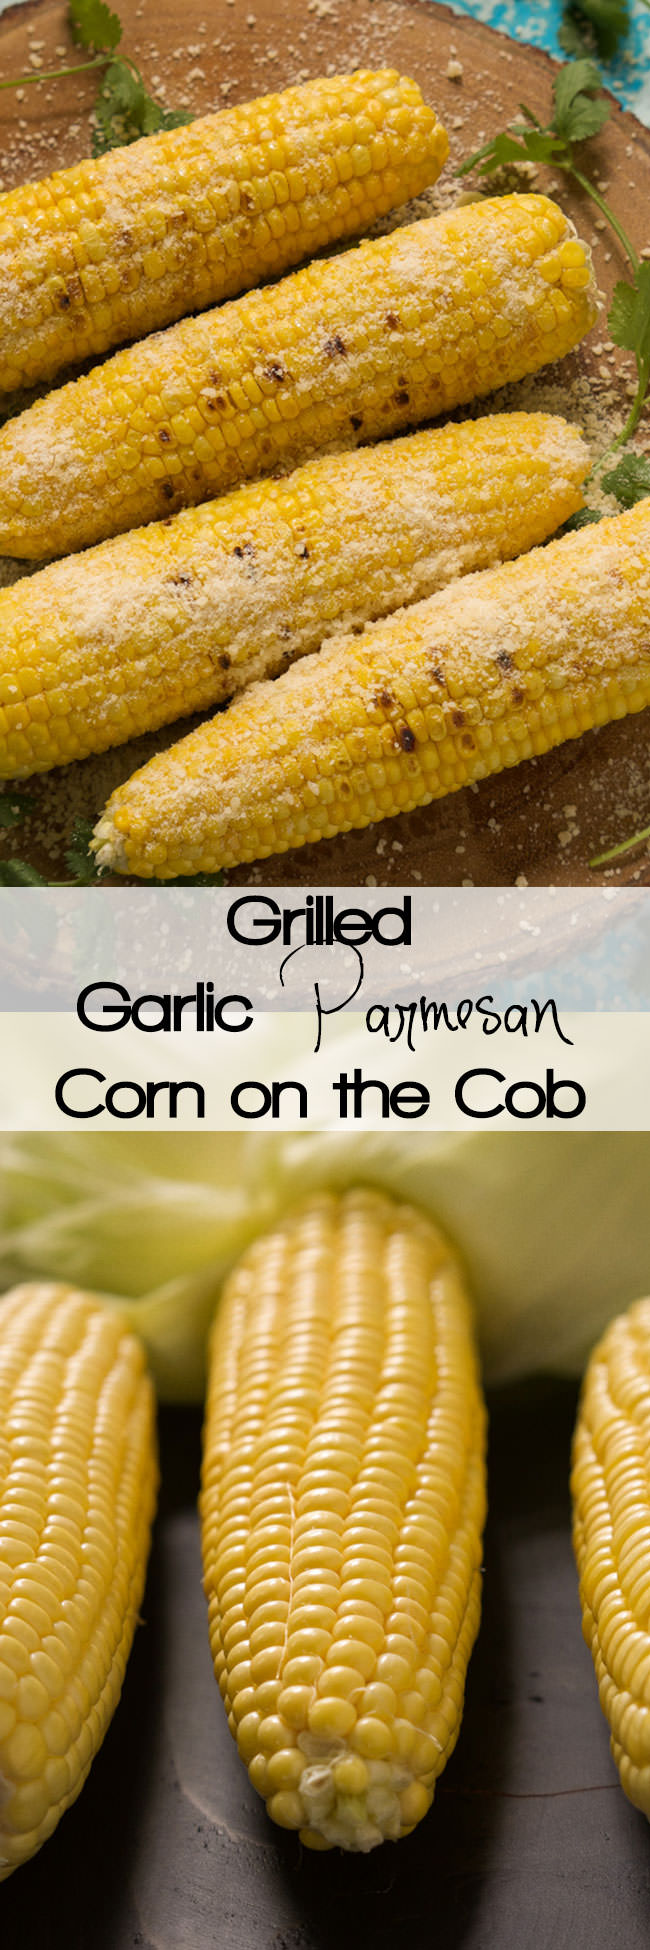 Grilled Garlic Parmesan Corn on the Cob is an easy, cheesy dish that ...